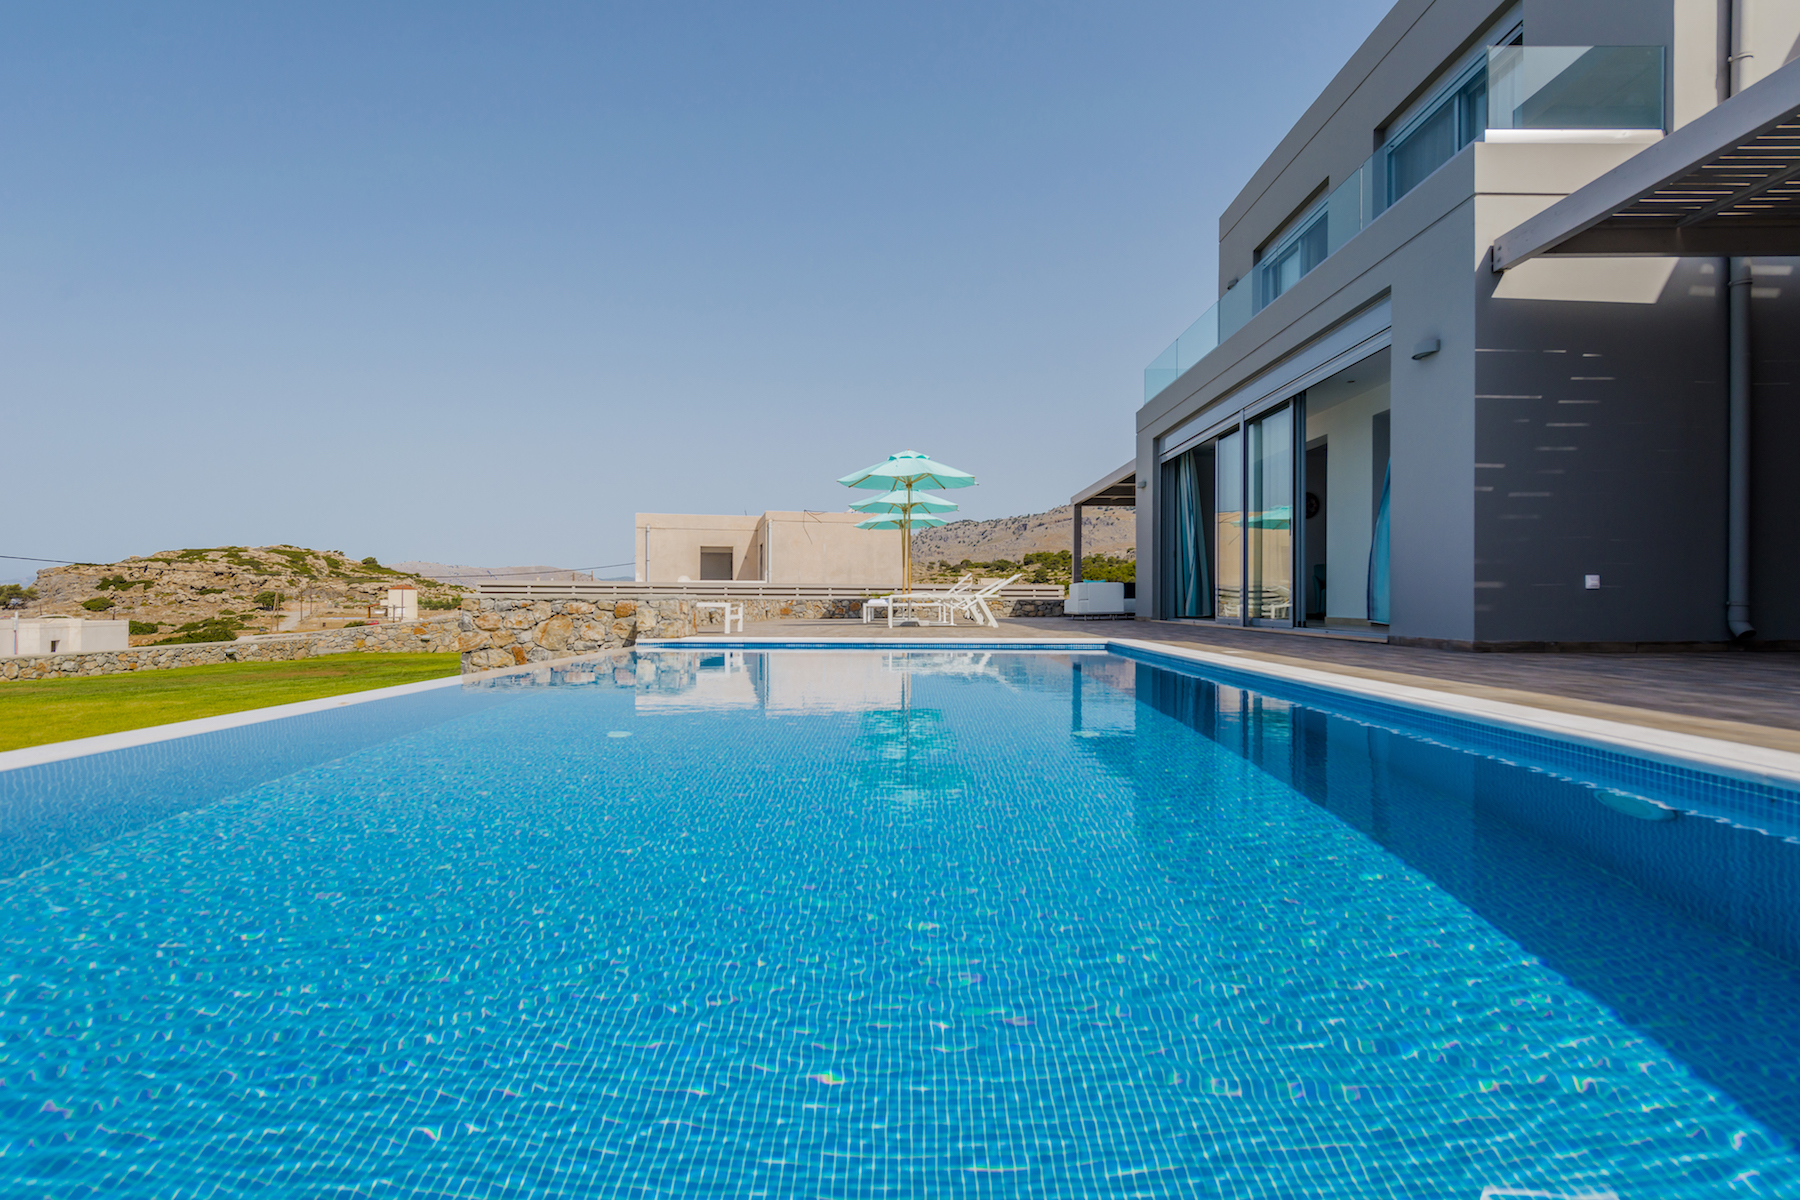 Single Family Home for Sale at Summer Living Rhodes, Southern Aegean, Greece